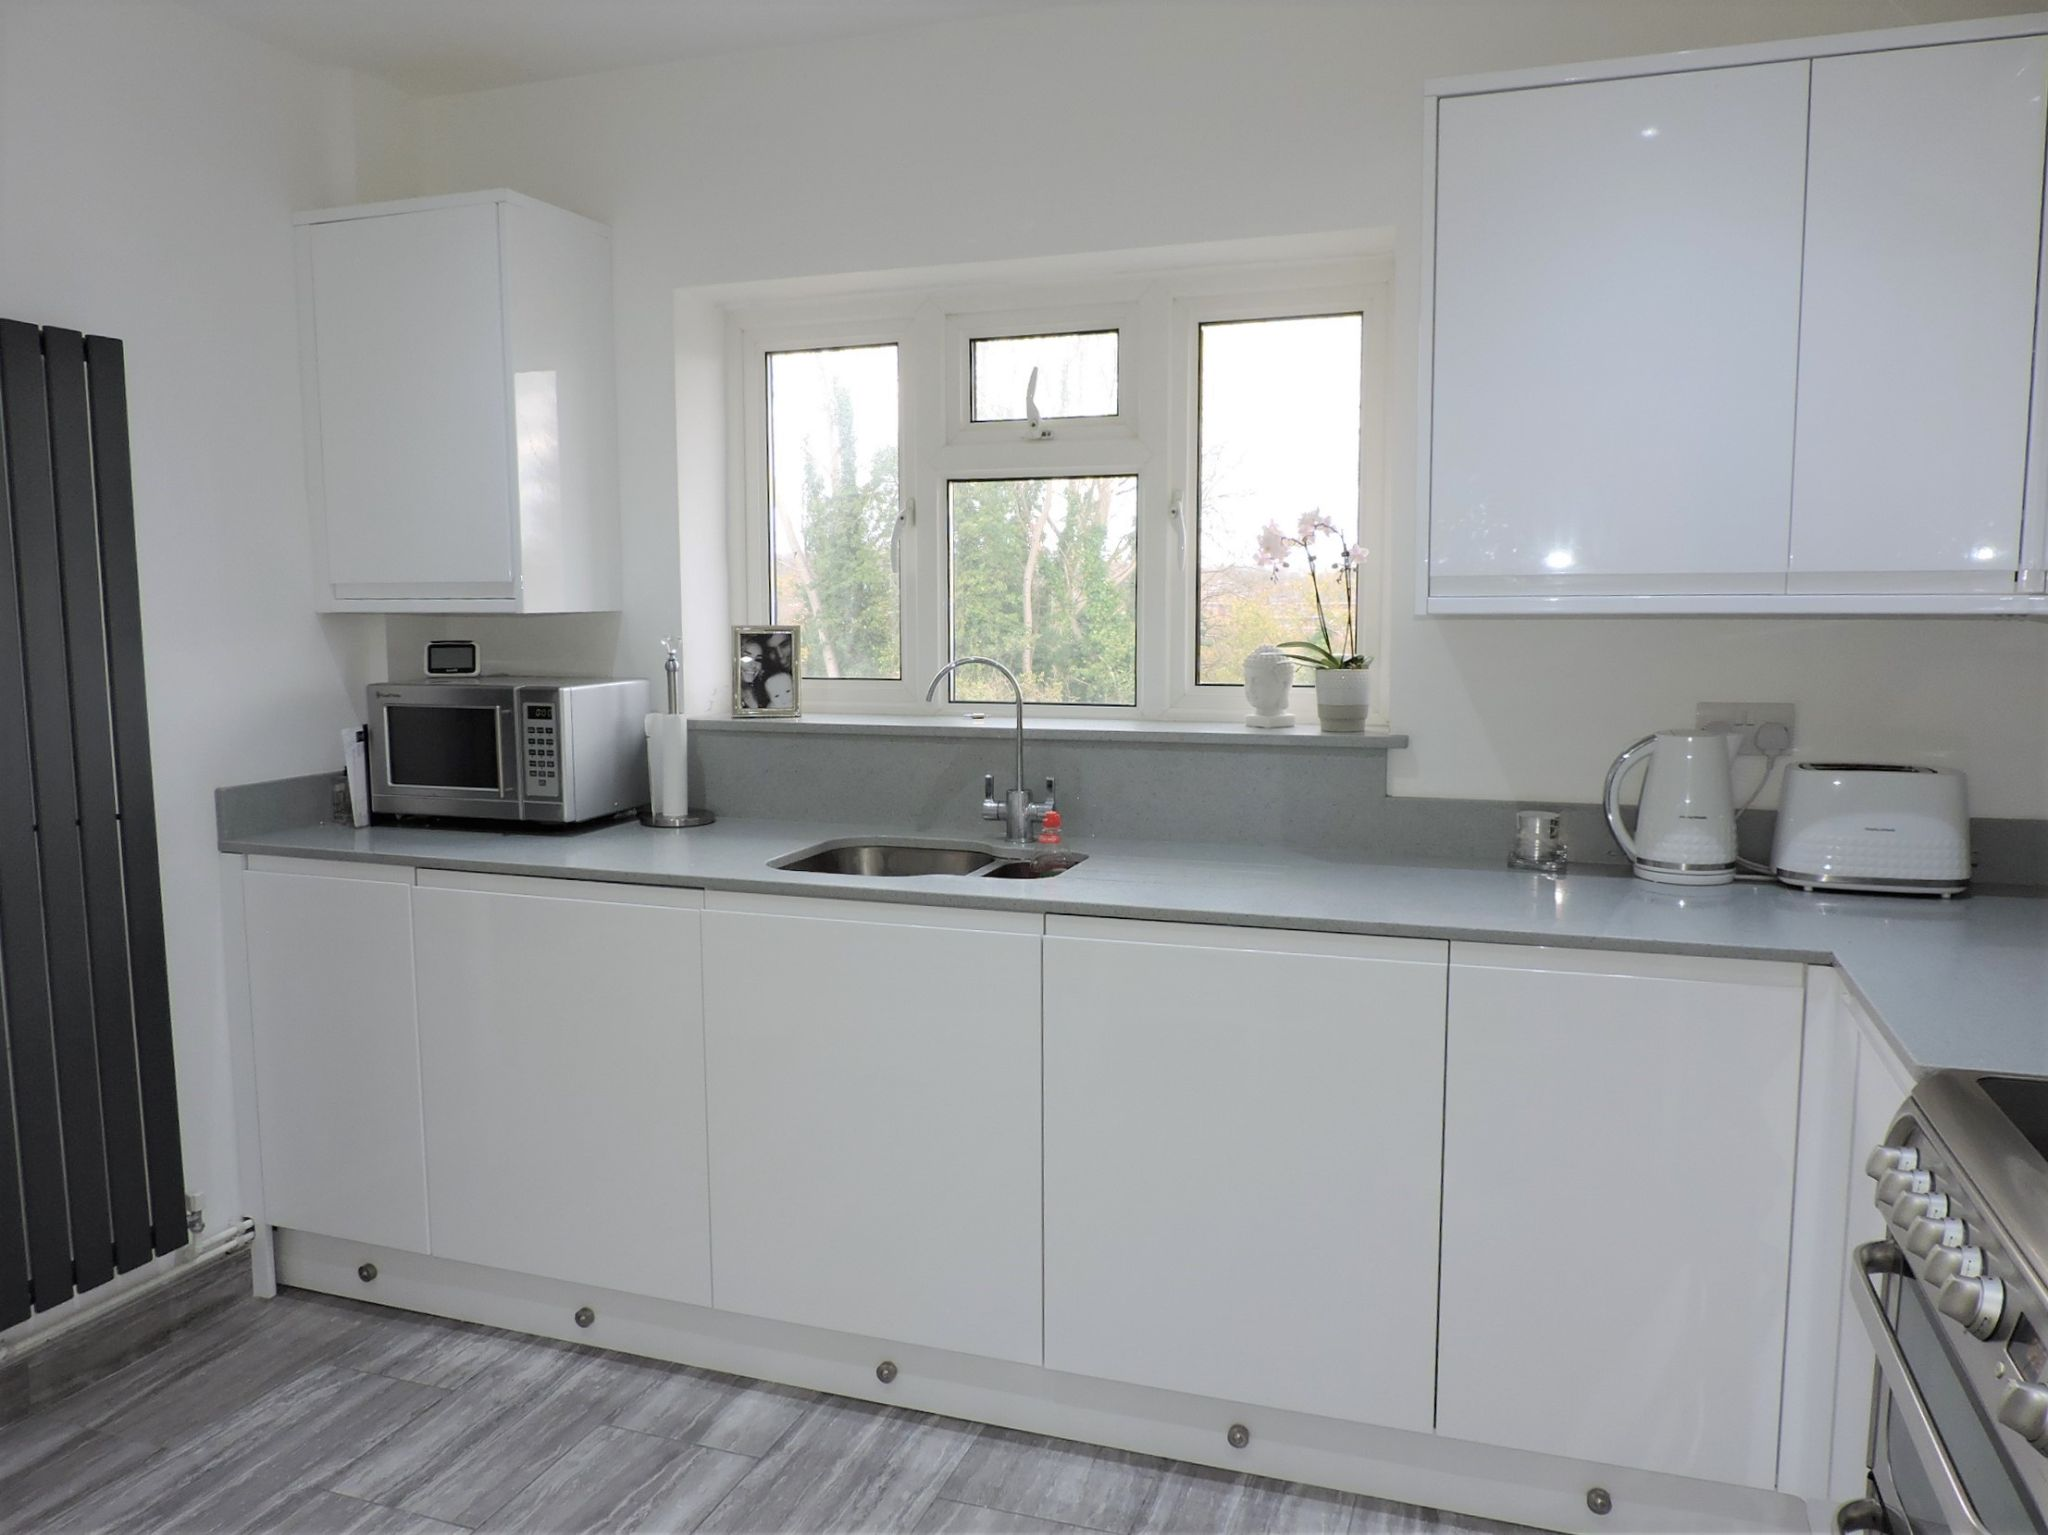 2 bedroom flat flat/apartment Sale Agreed in Epsom - Photograph 8